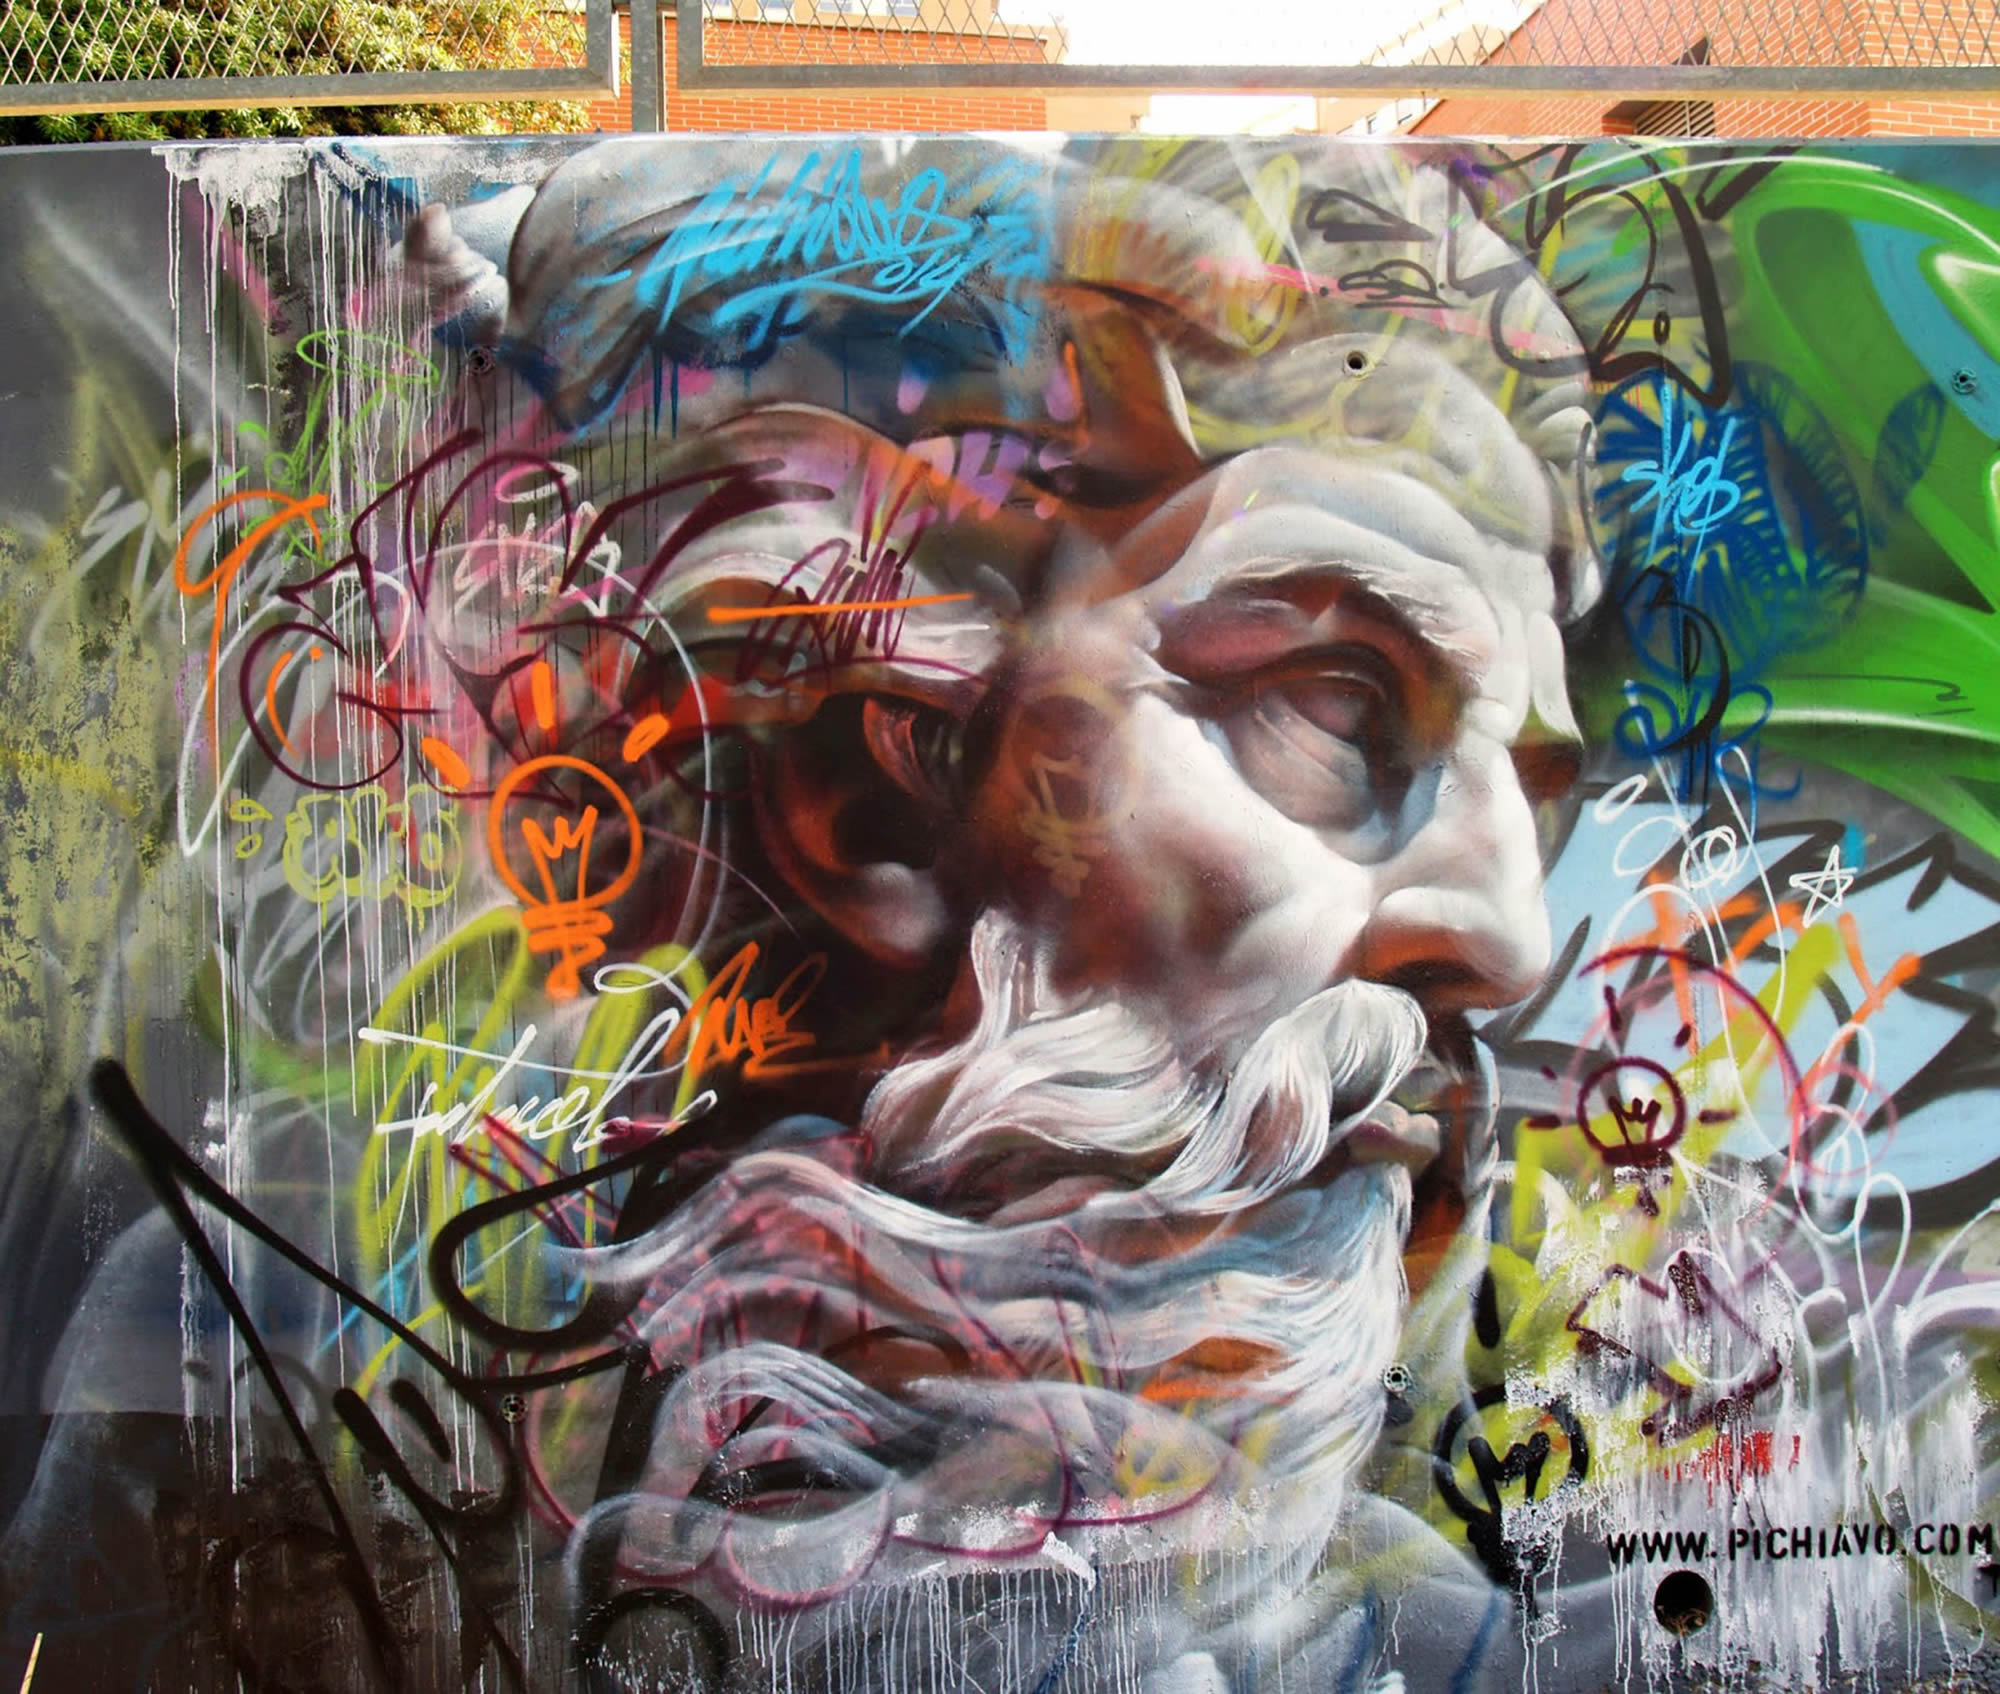 Pichi&Avo: Graffiti Art x Greek Mythology